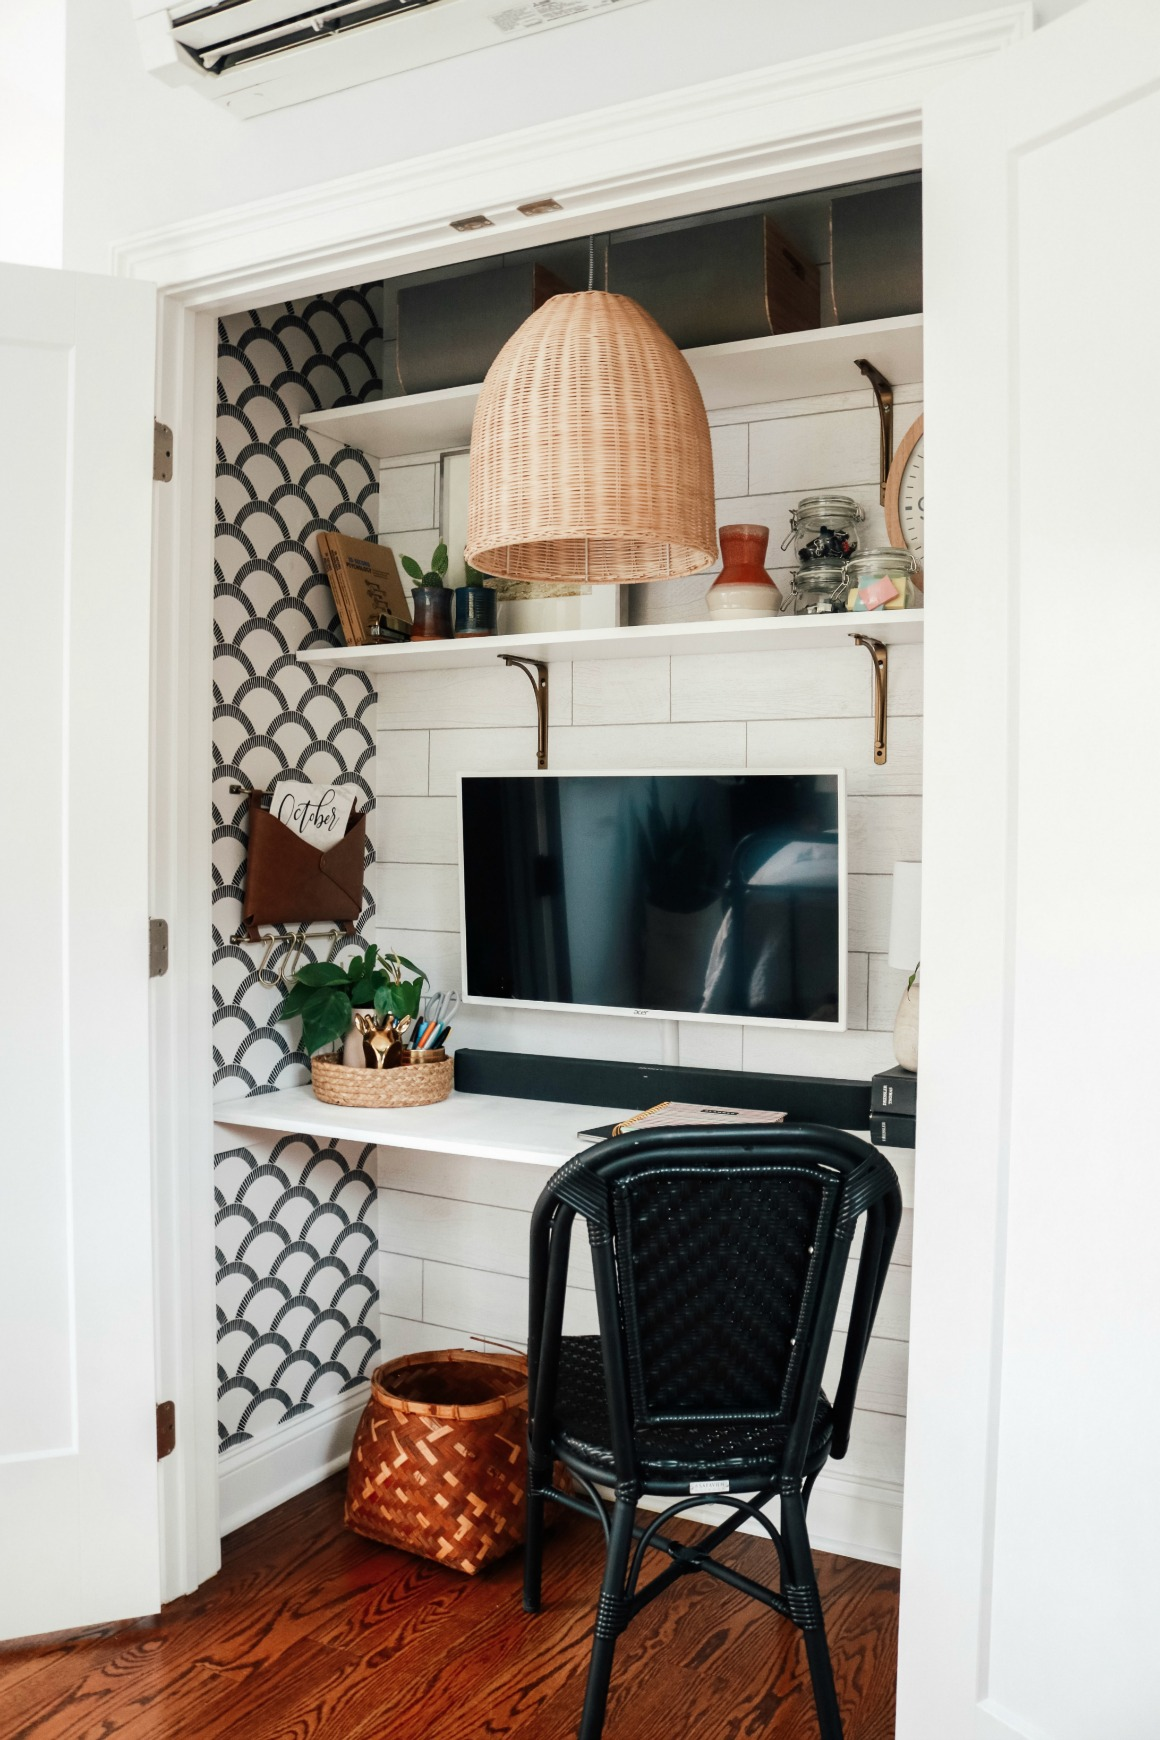 """Cloffice"" Closet turned into an Office- Small Space Hack"